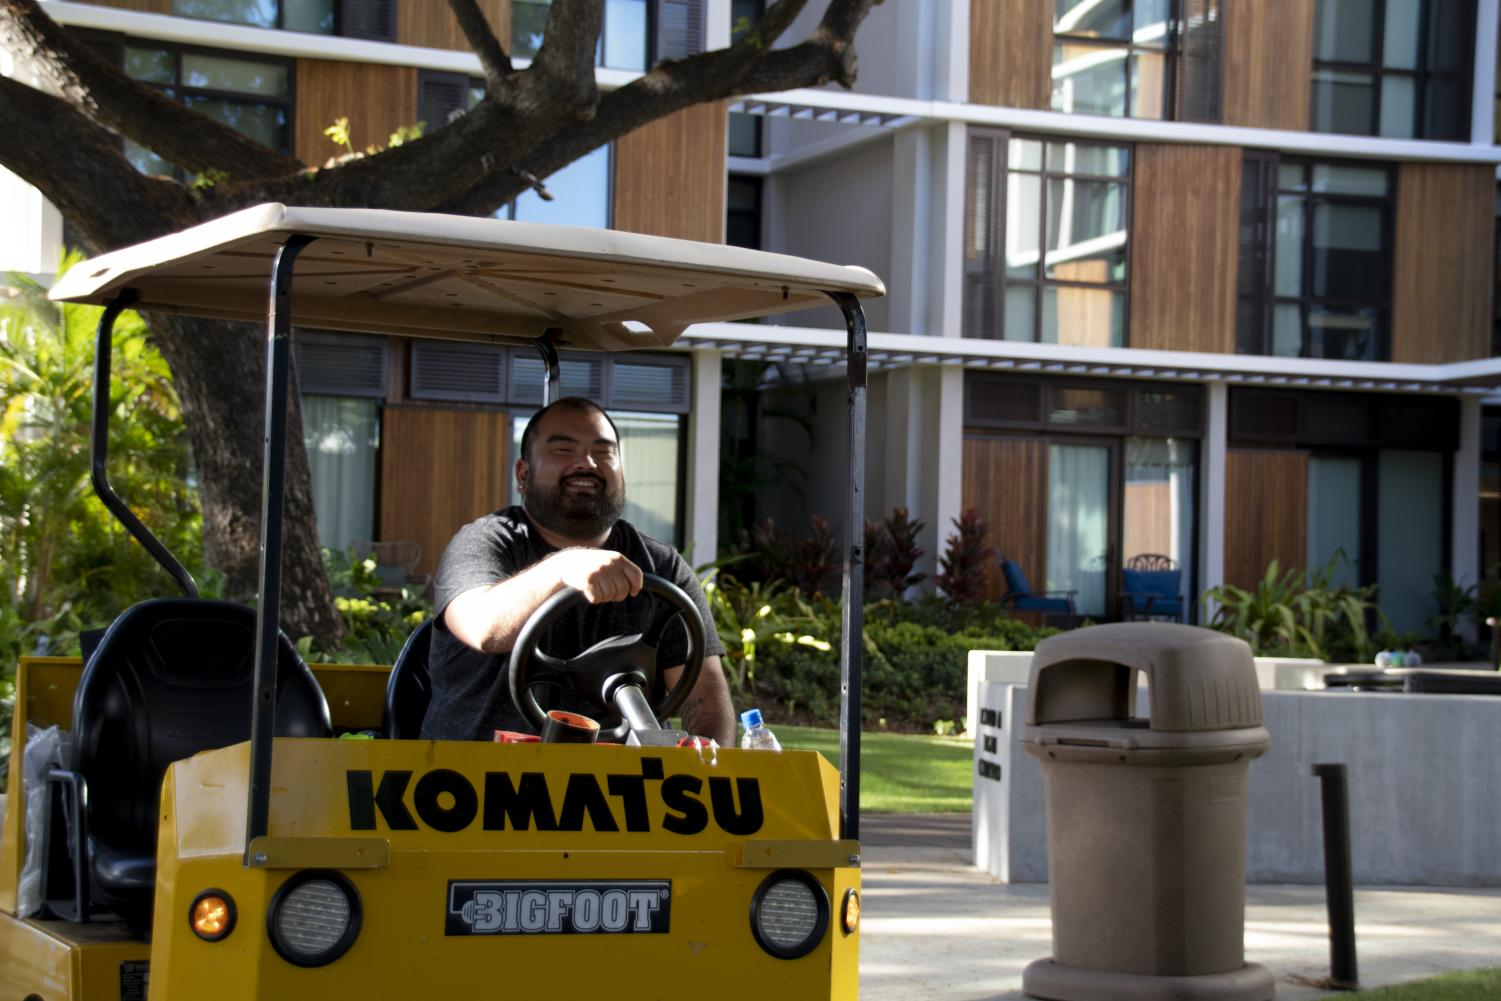 Mr. Kevin Tomisato '04 drives in his cart, tending to various matters around campus.